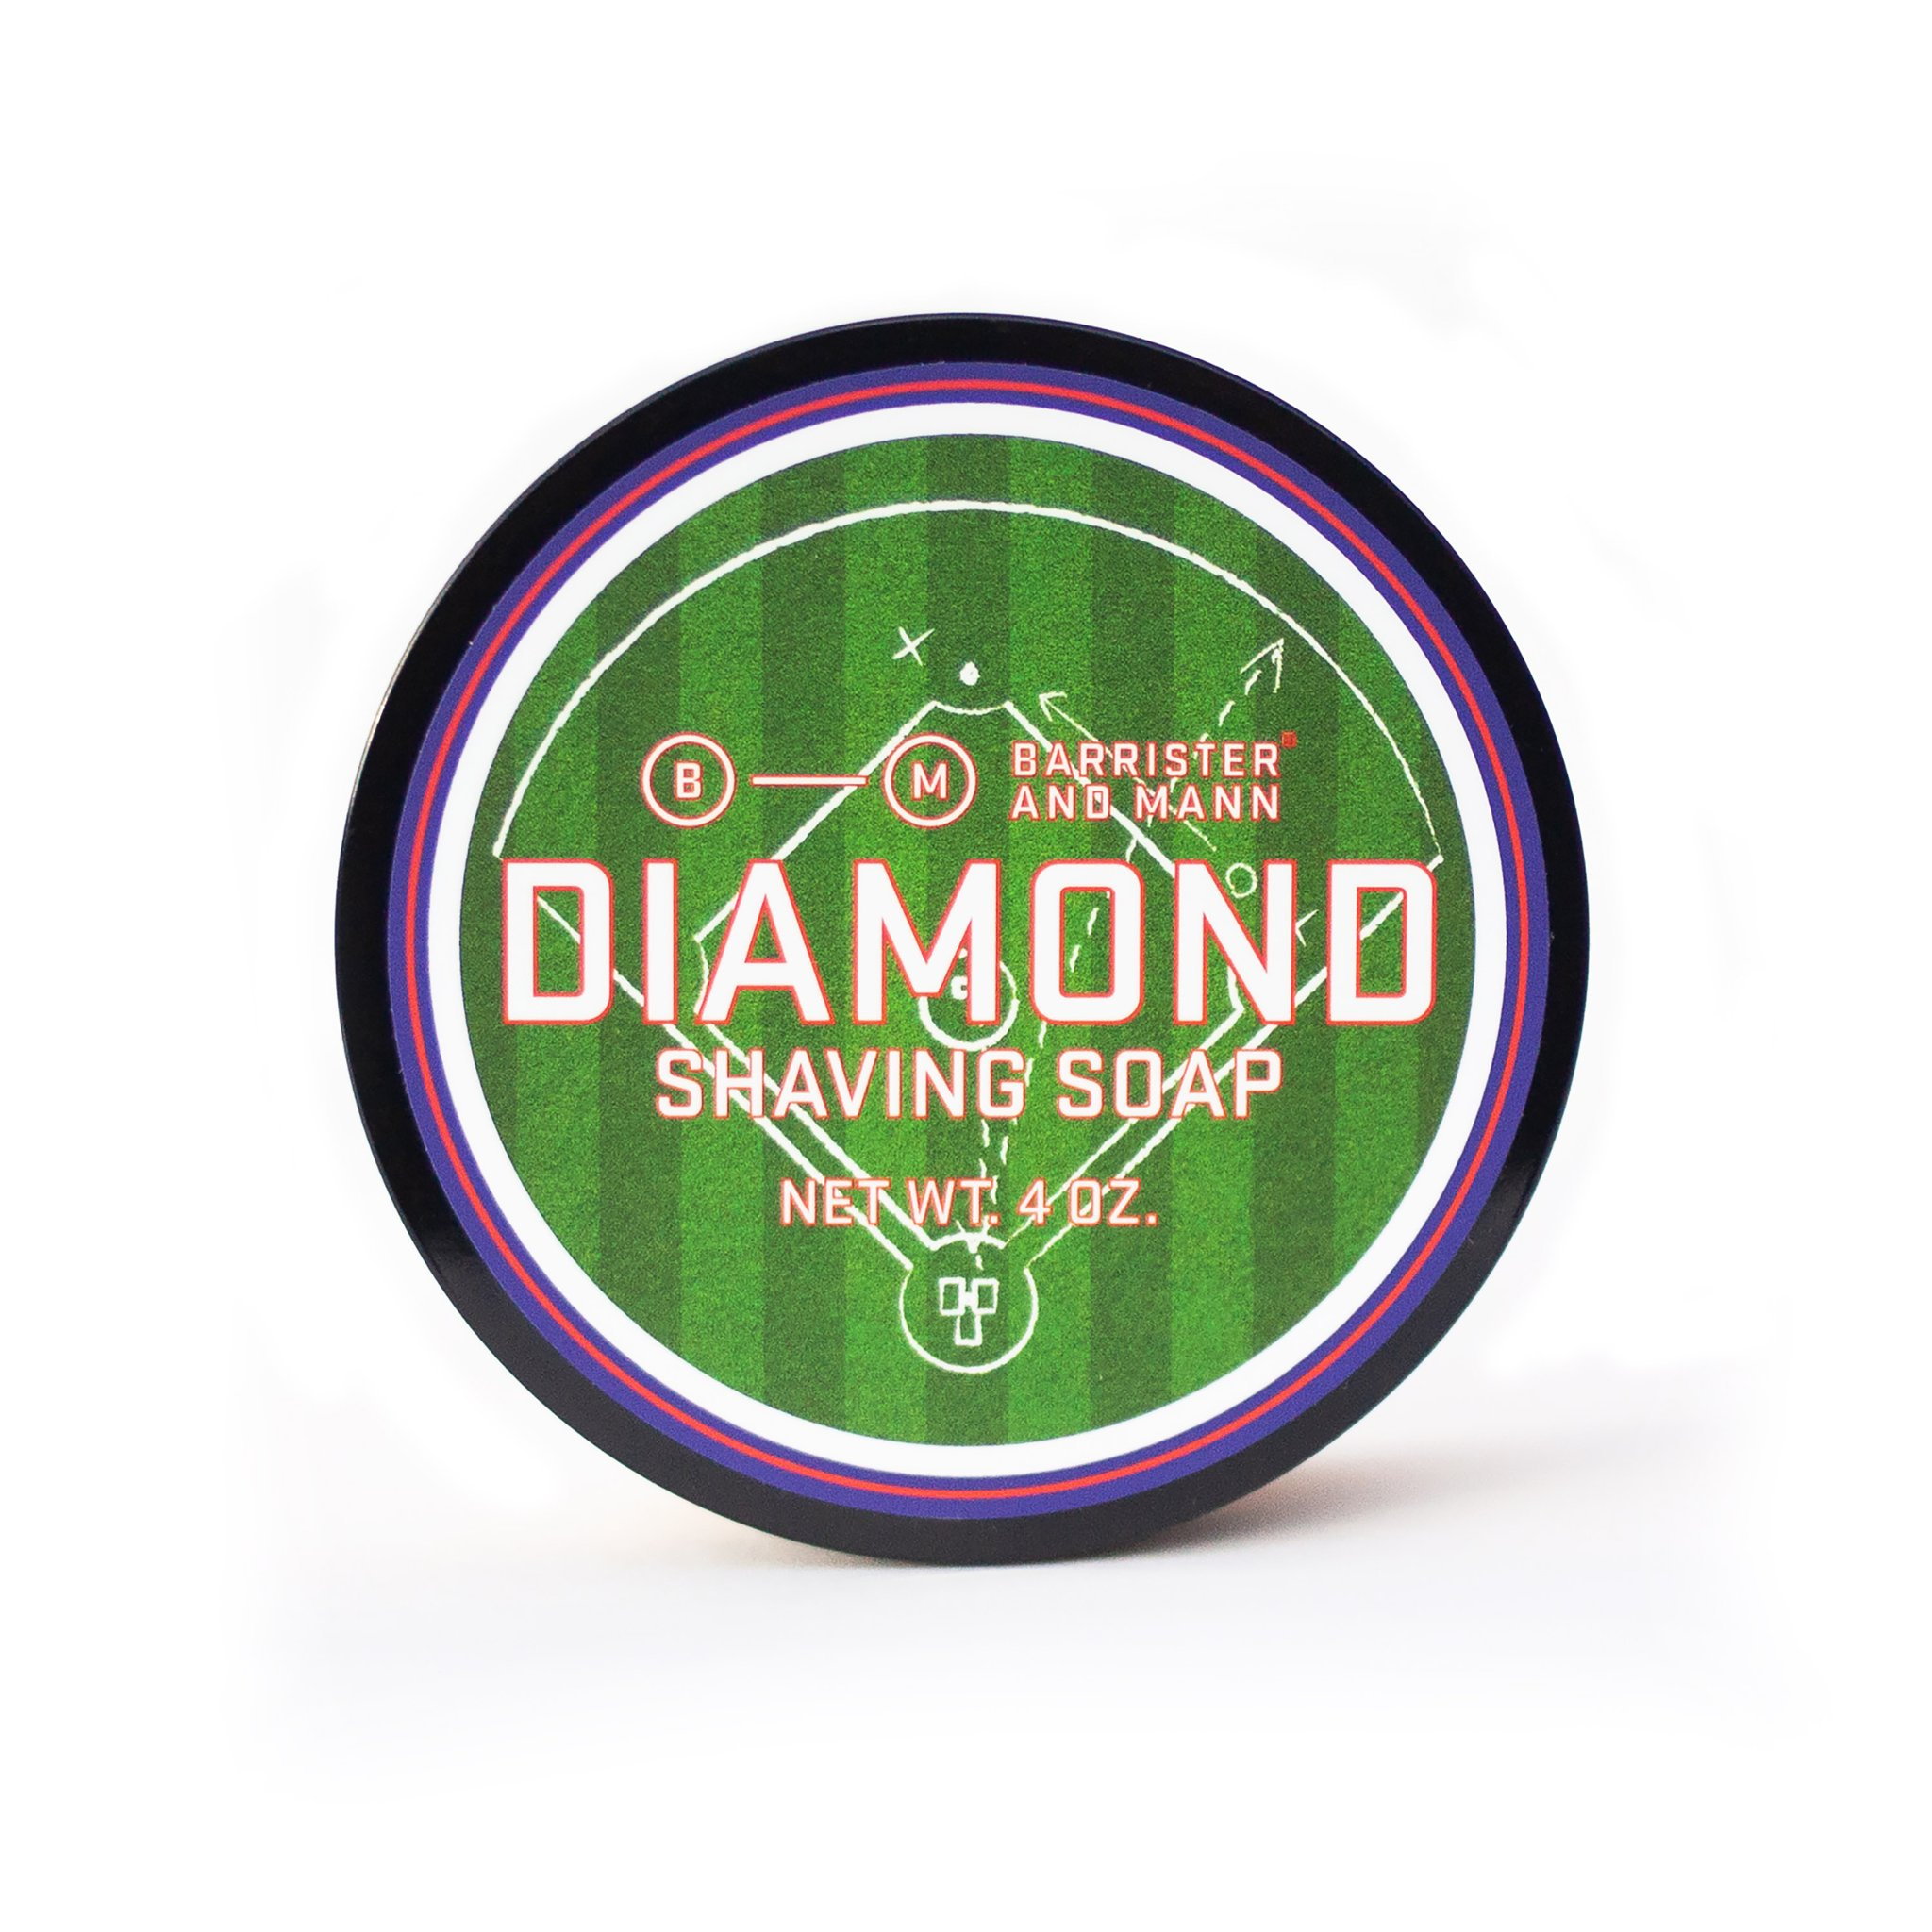 Barrister and Mann - Diamond - Soap image